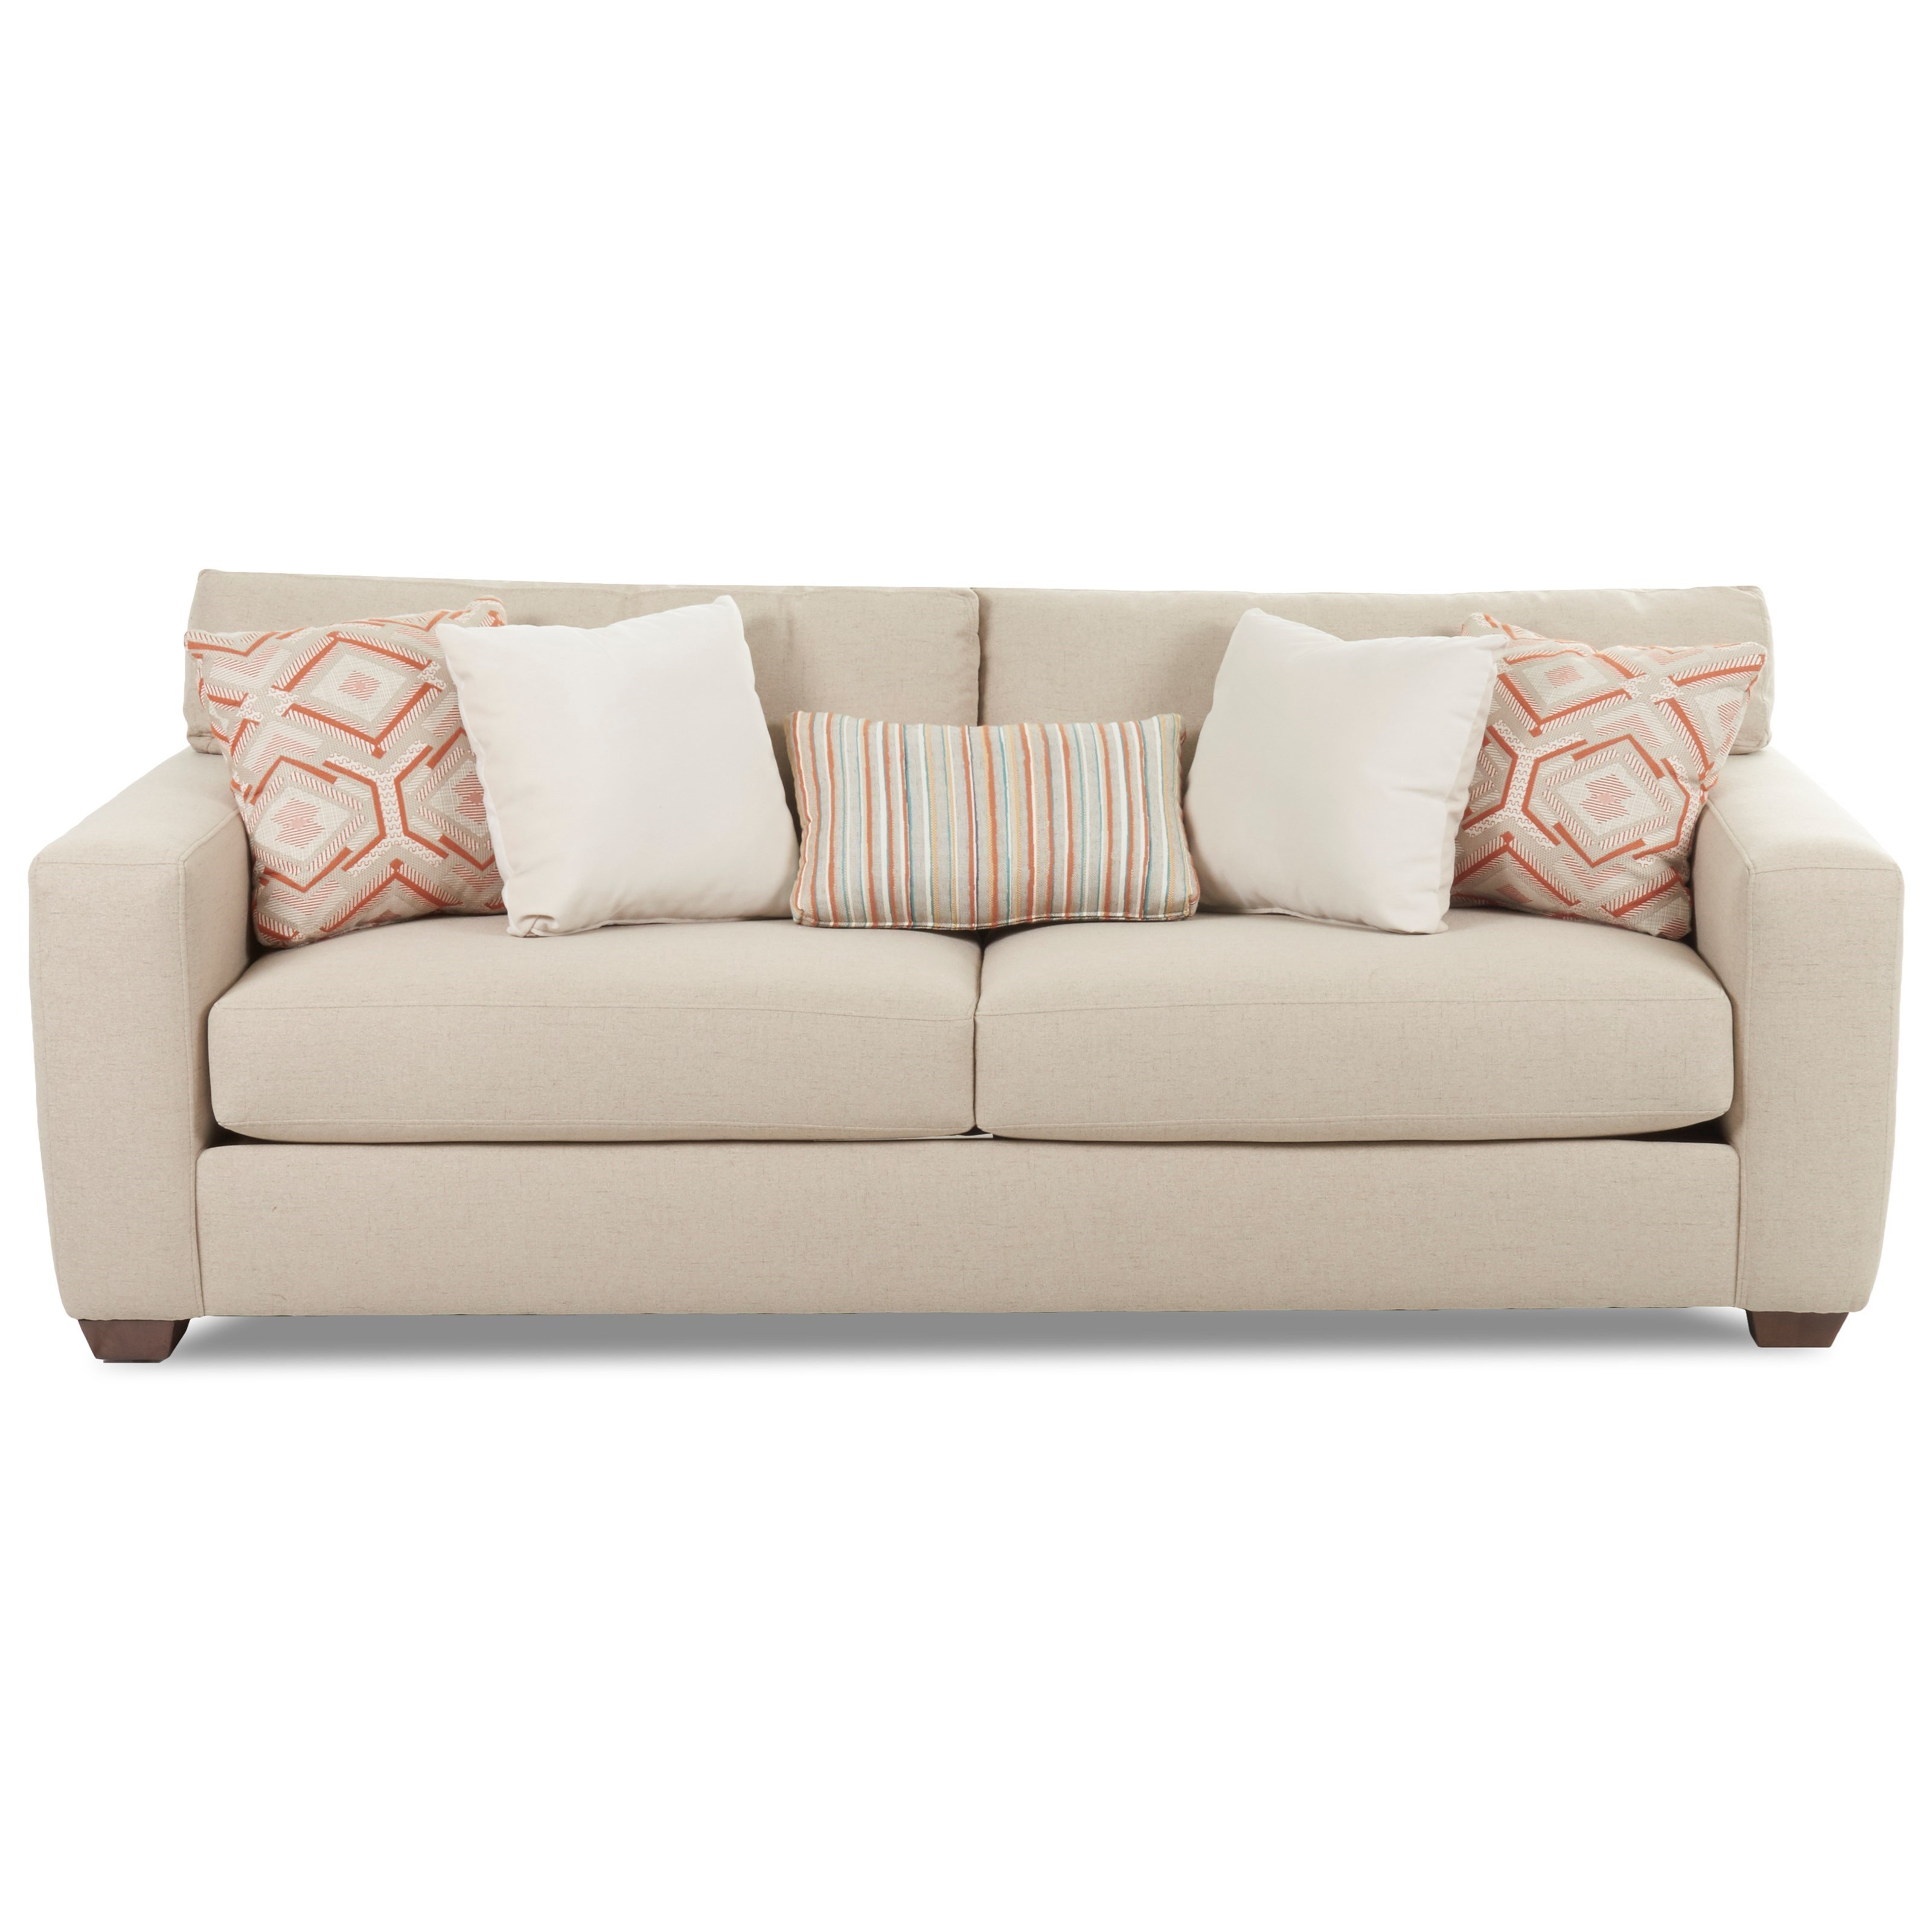 Klaussner Credo Sofa with Track Arms and Five Pillows Wayside